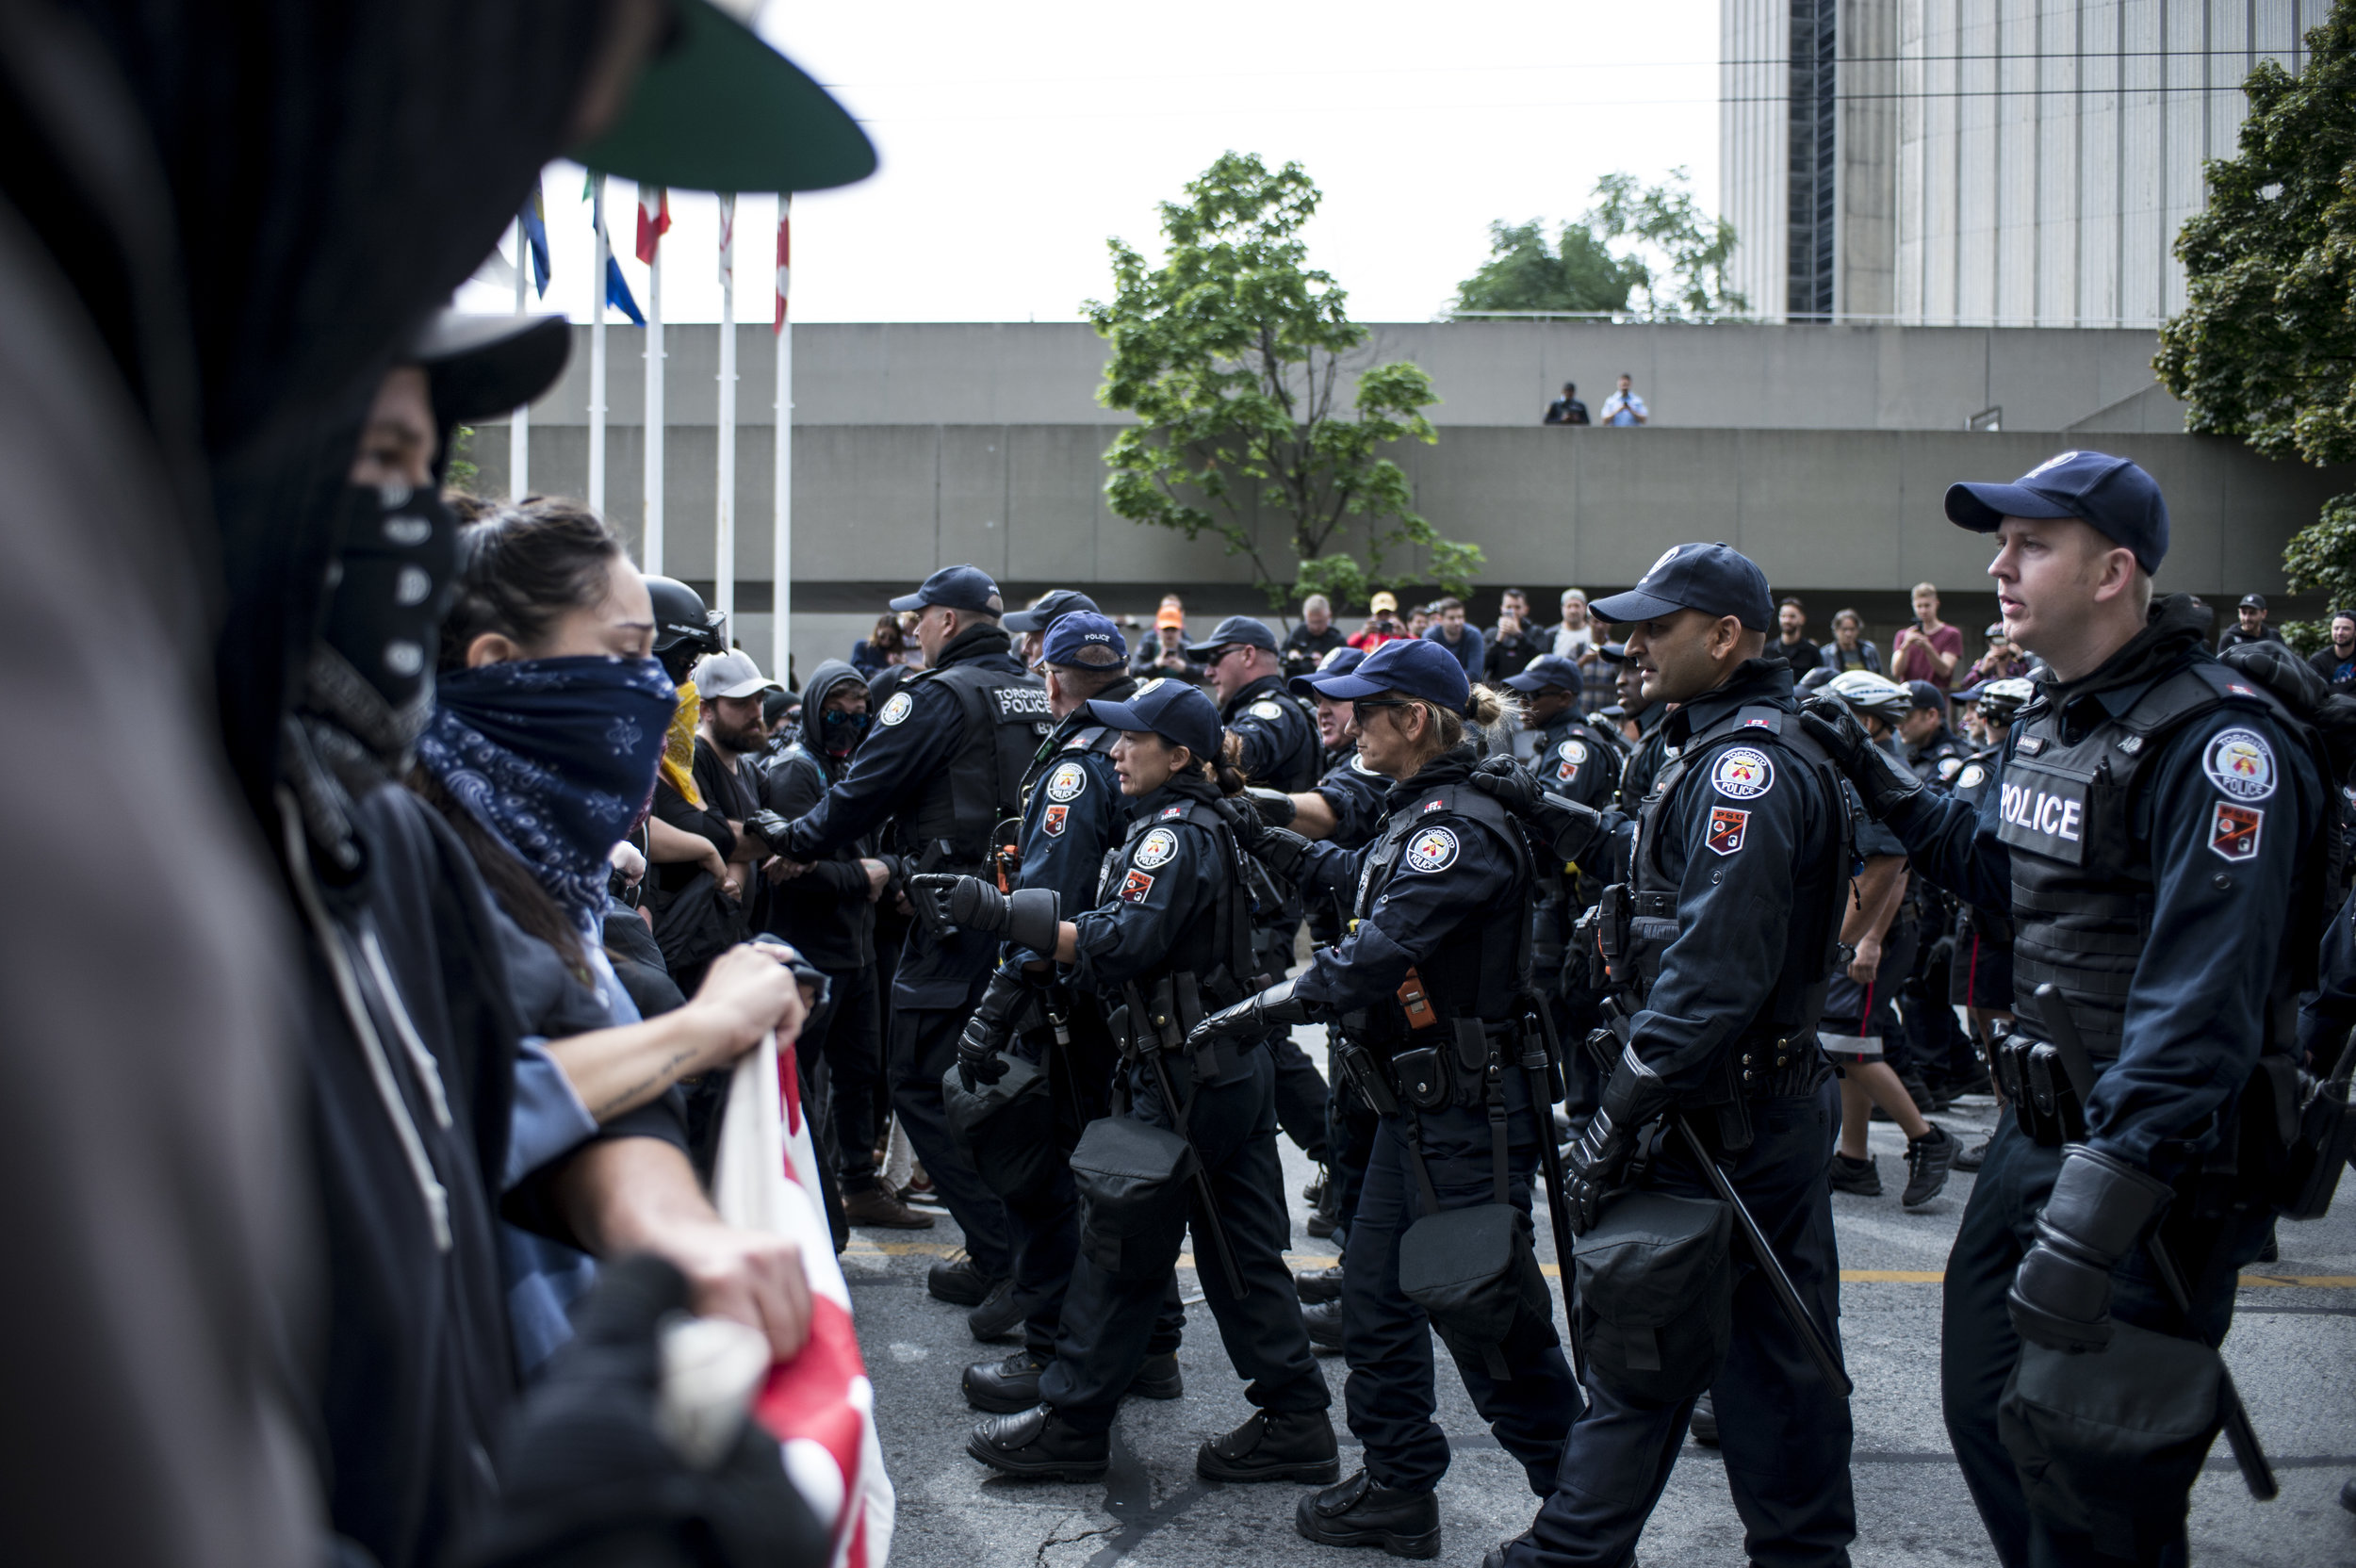 Police move forward to disperse a line of arm-linked Antifa protestors (ALI JAVEED/THE UNDERGROUND)